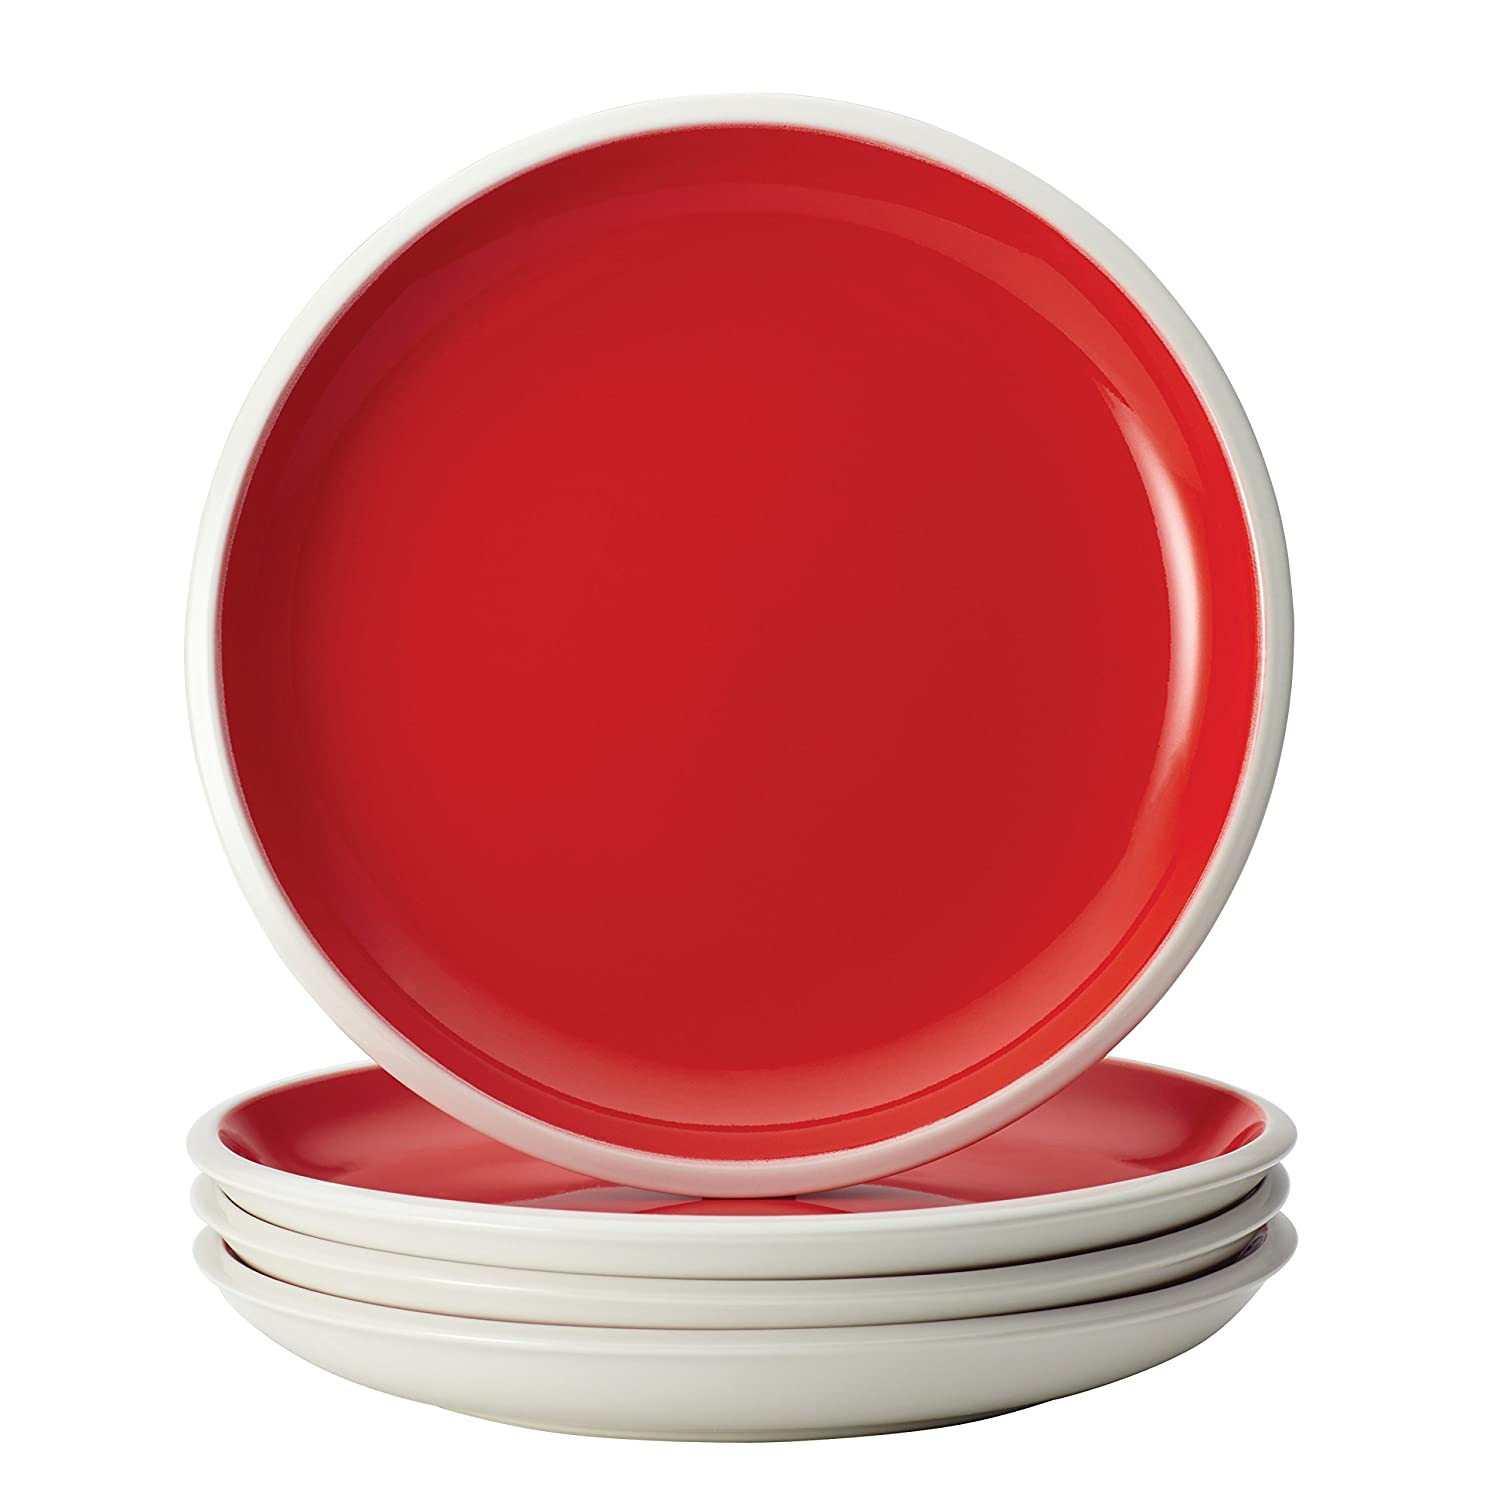 Rachael Ray Dinnerware Rise Collection 4-Piece Stoneware Salad Plate Set, Red 58726